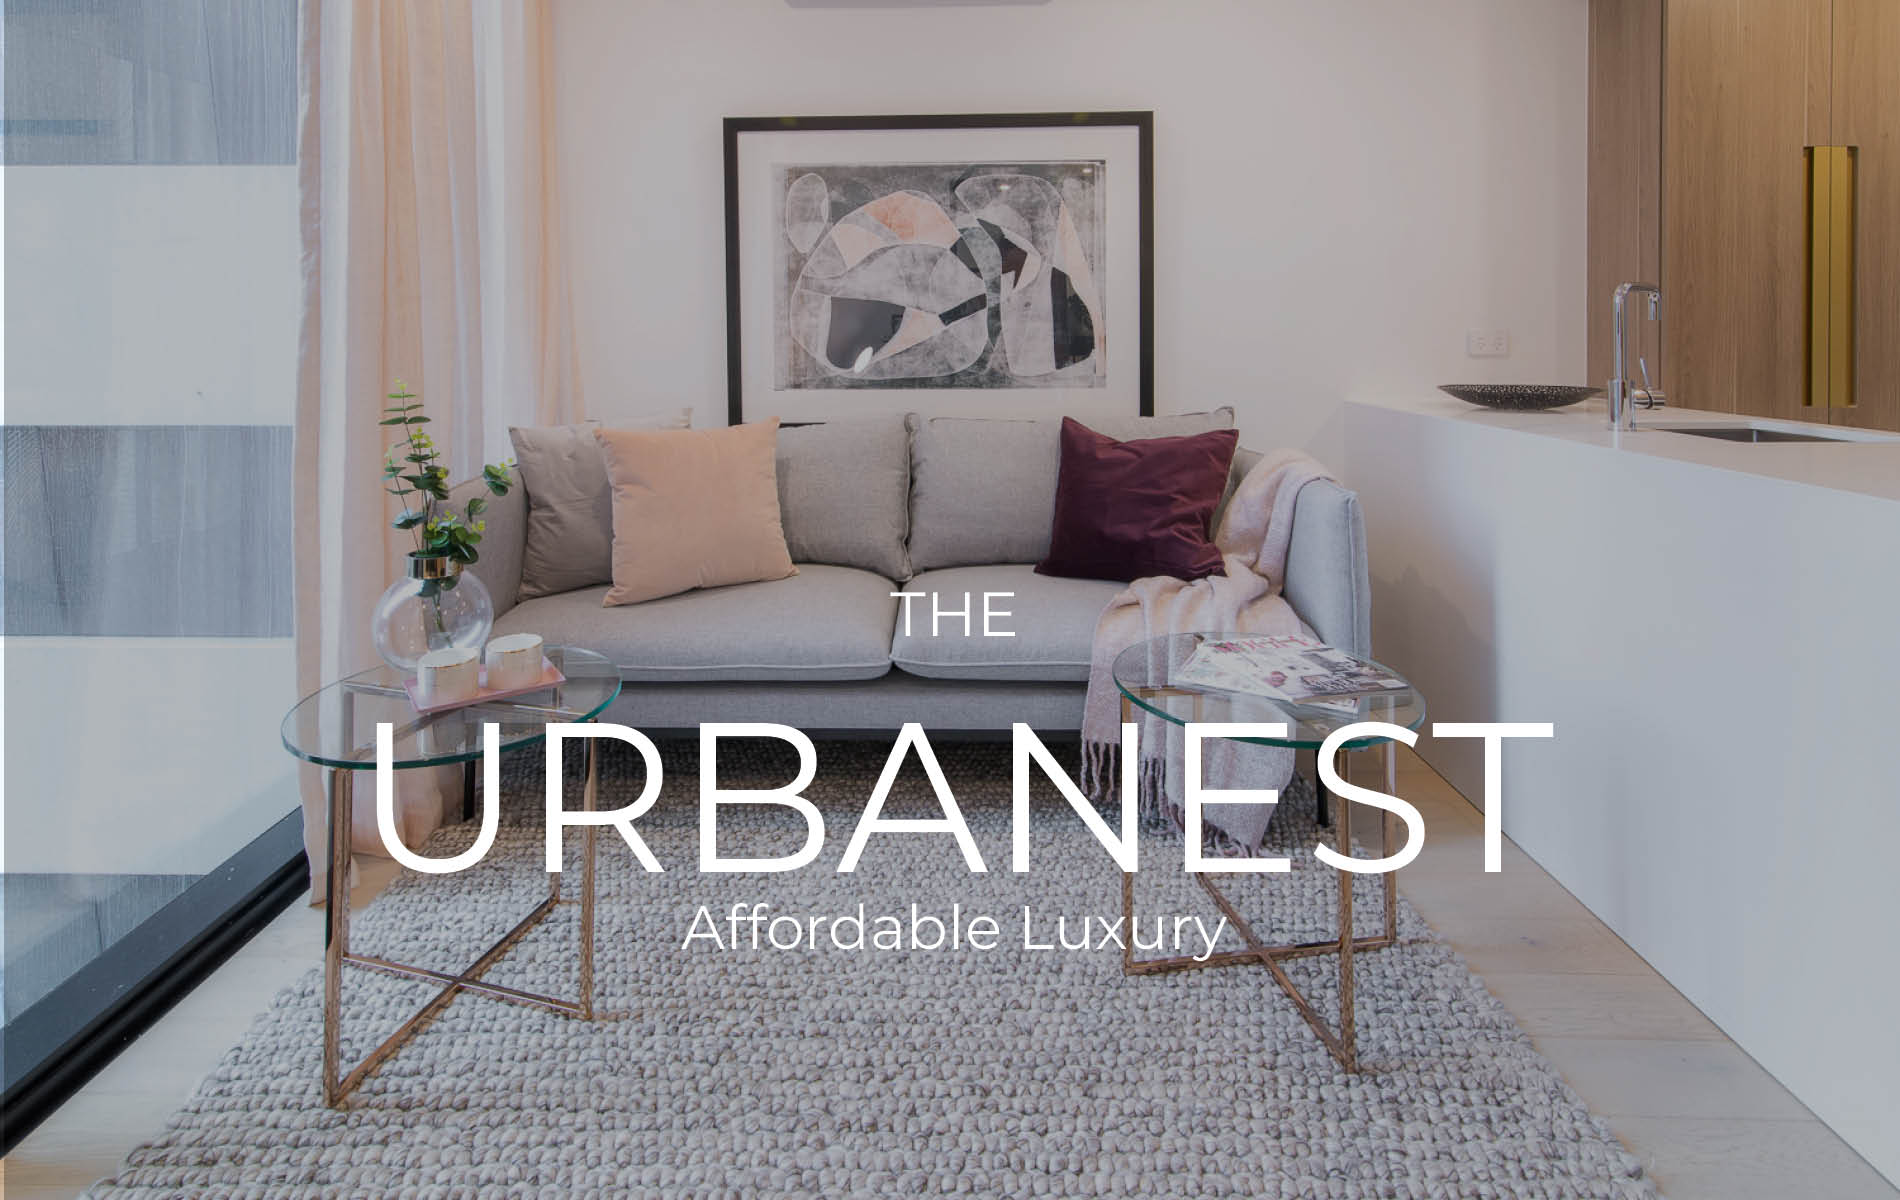 The Urbanest - Affordable Luxury